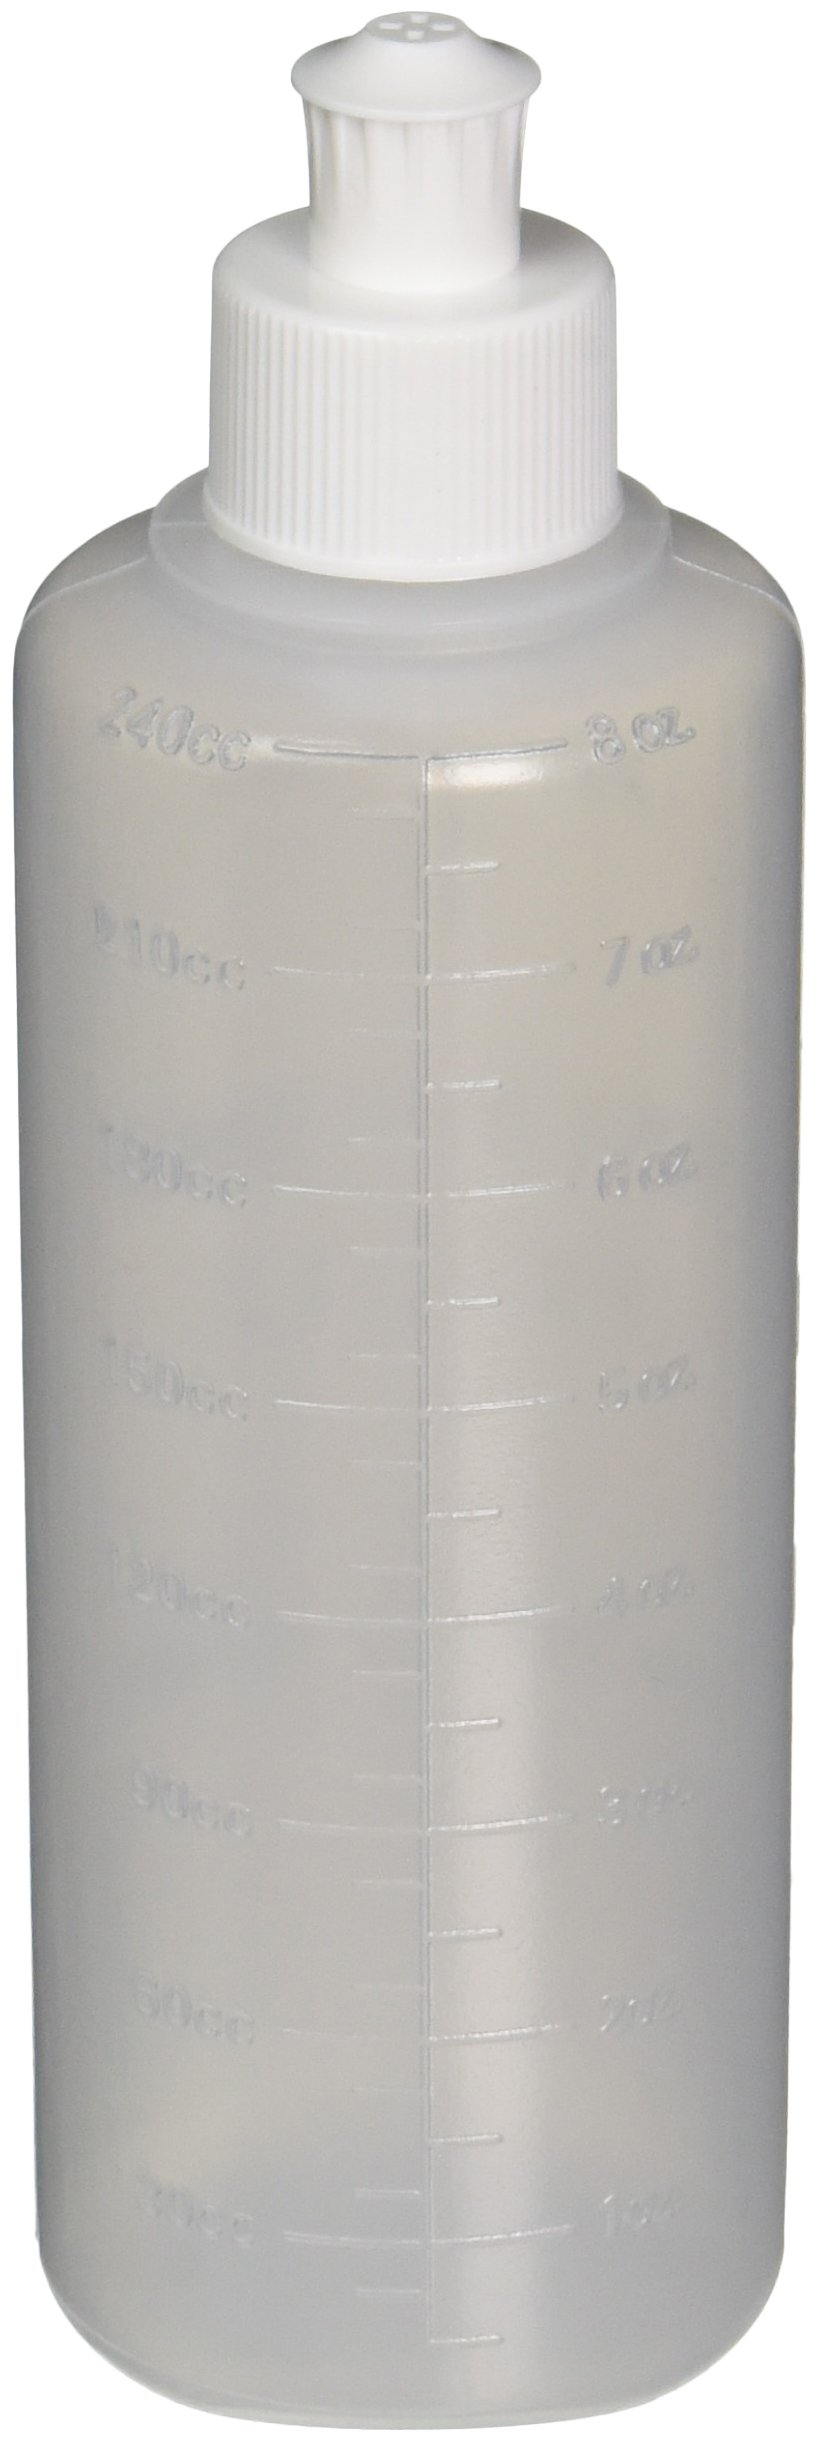 Medline DYND70125 Perineal Irrigation Bottle with Lid, Lavette, Latex Free, 8 Ounces Capacity (Pack of 50) by Medline